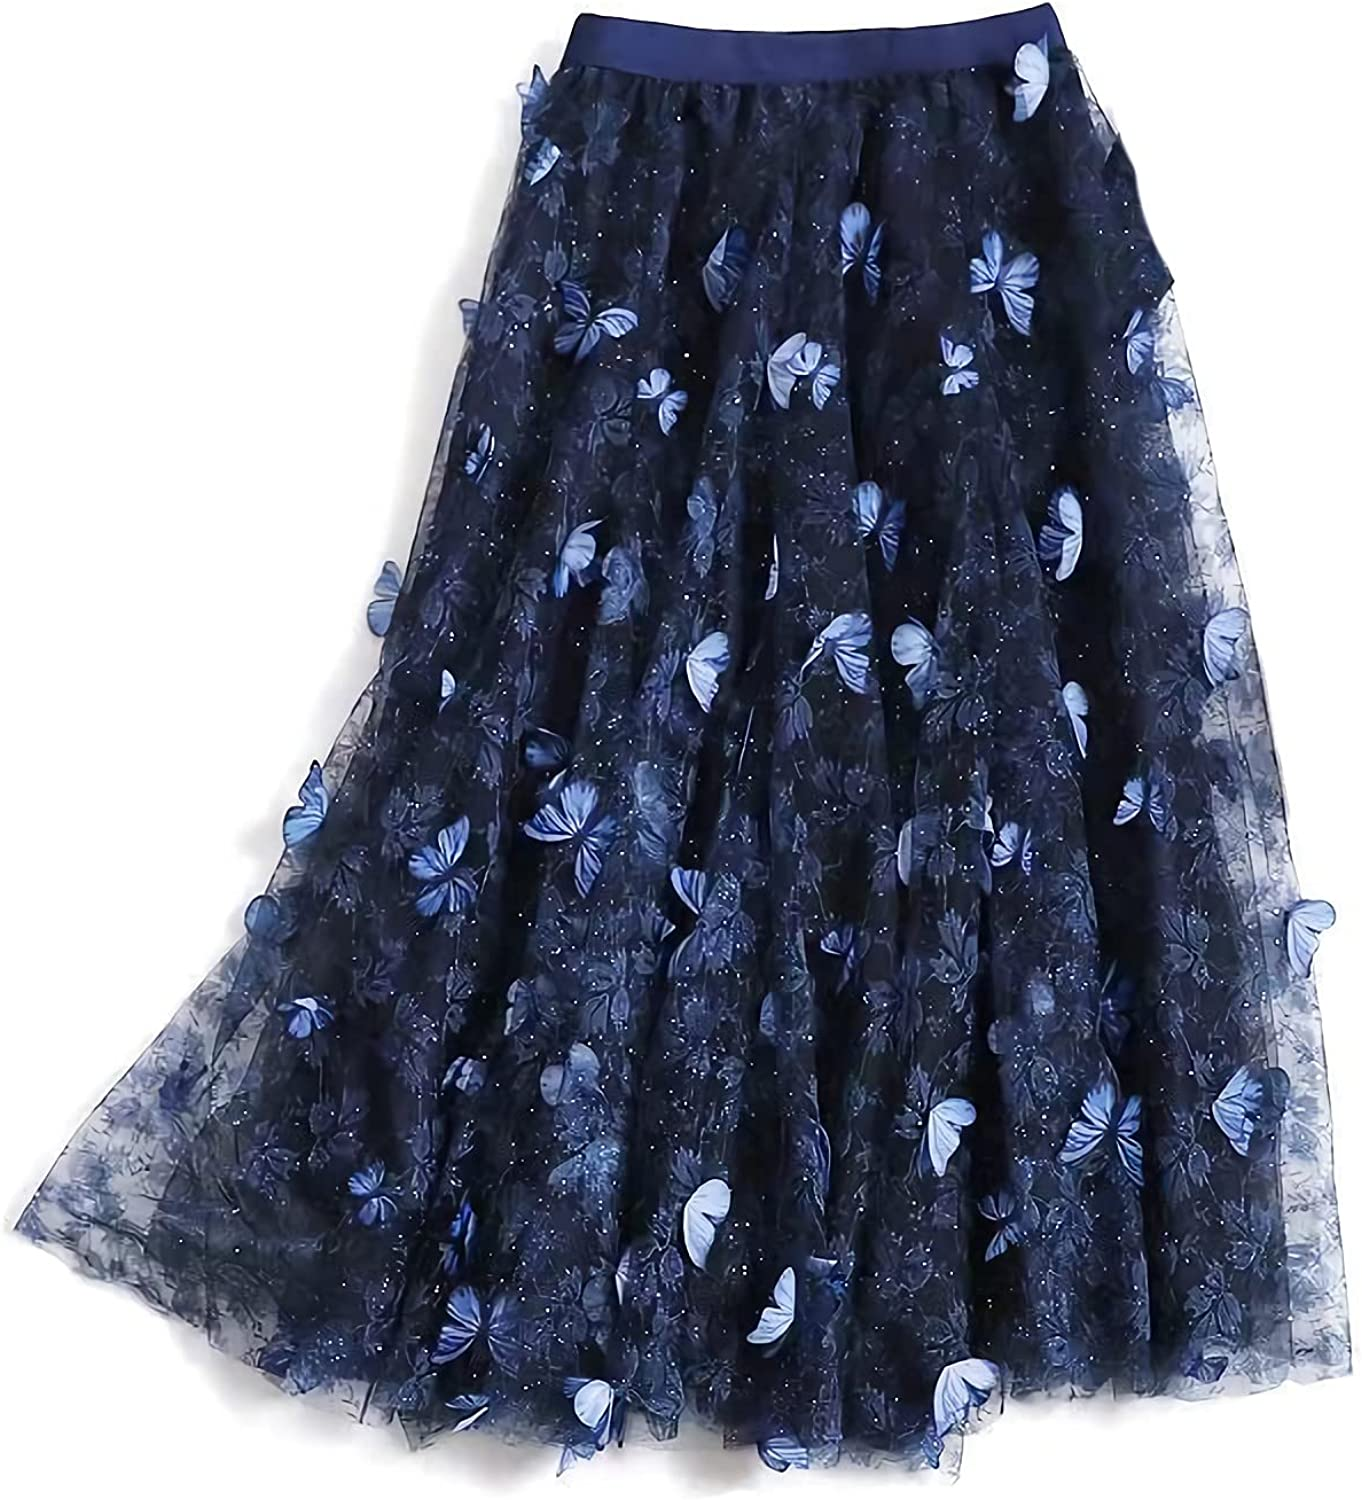 Women Midi Tulle Skirt A-Line Layered Elastic High Waist 3D Floral Embroidery Swing Skirt